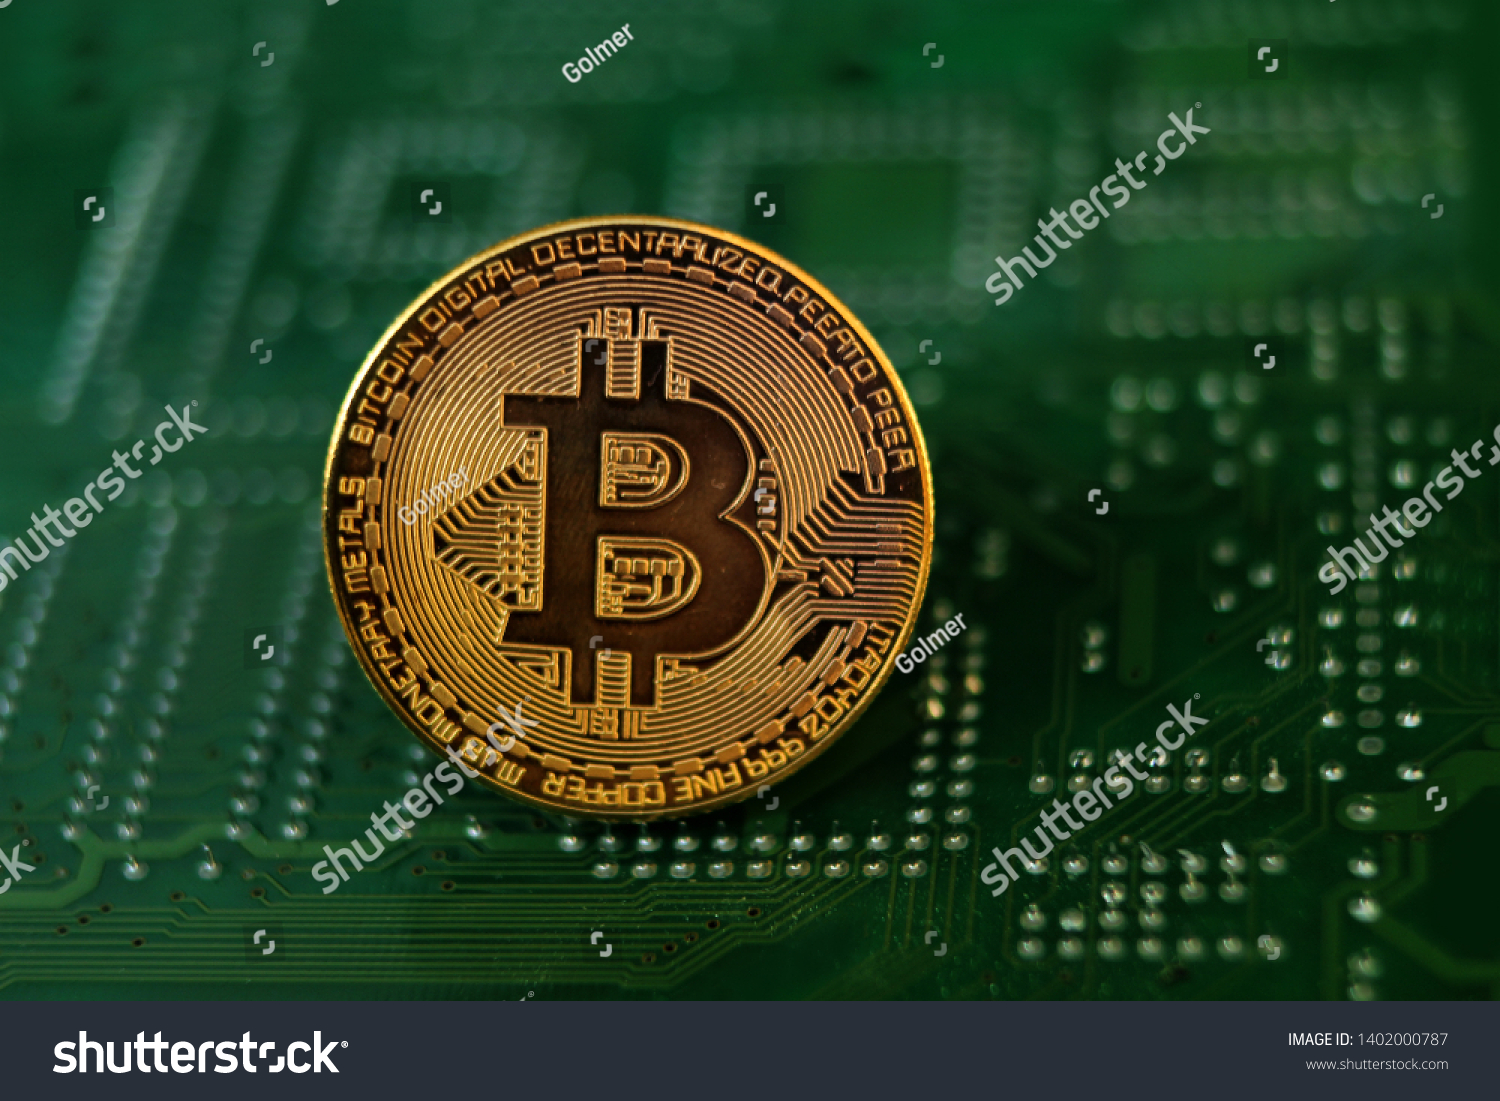 tech coin cryptocurrency